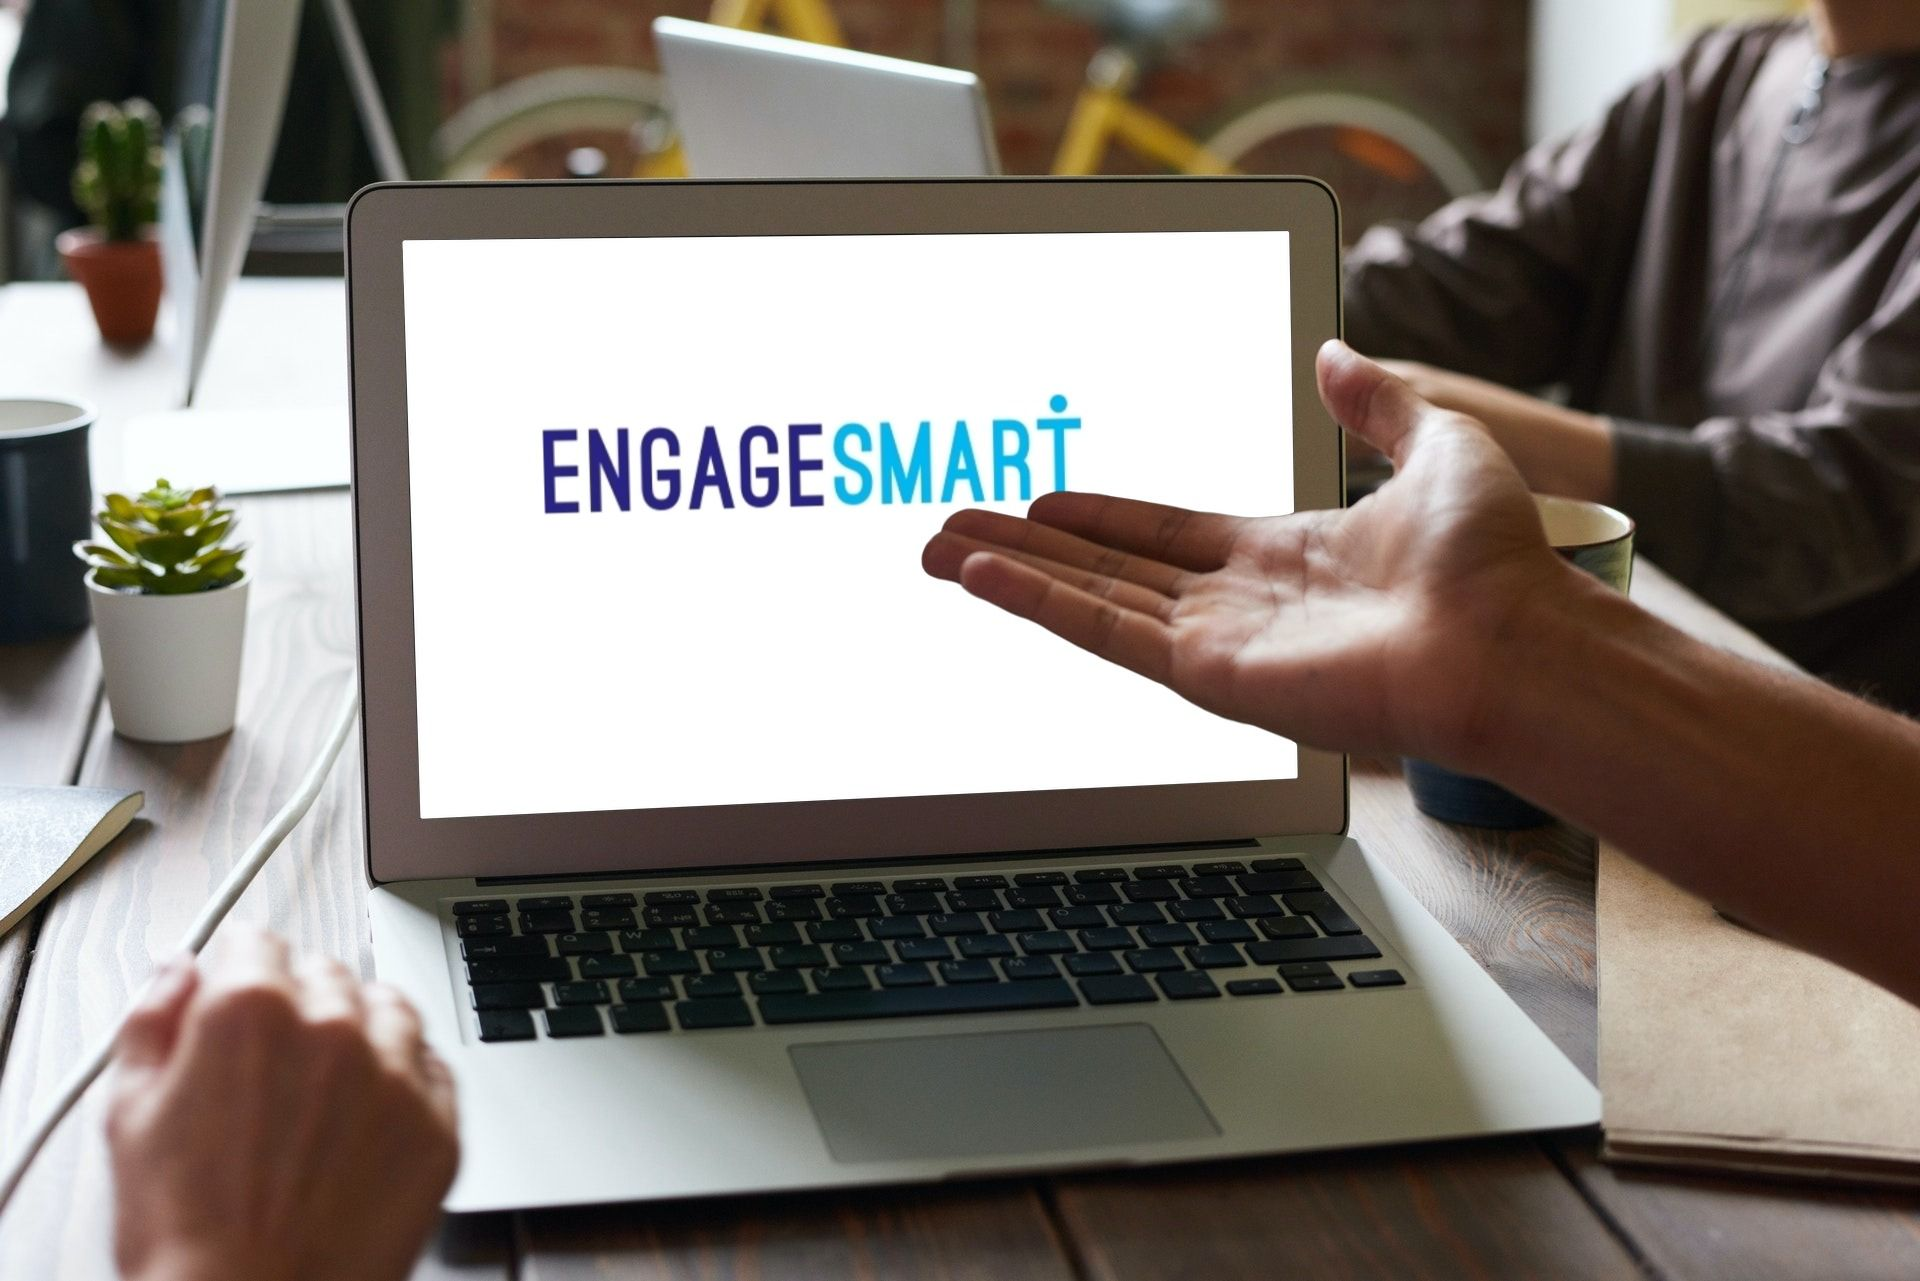 EngageSmart Initial Public Offering